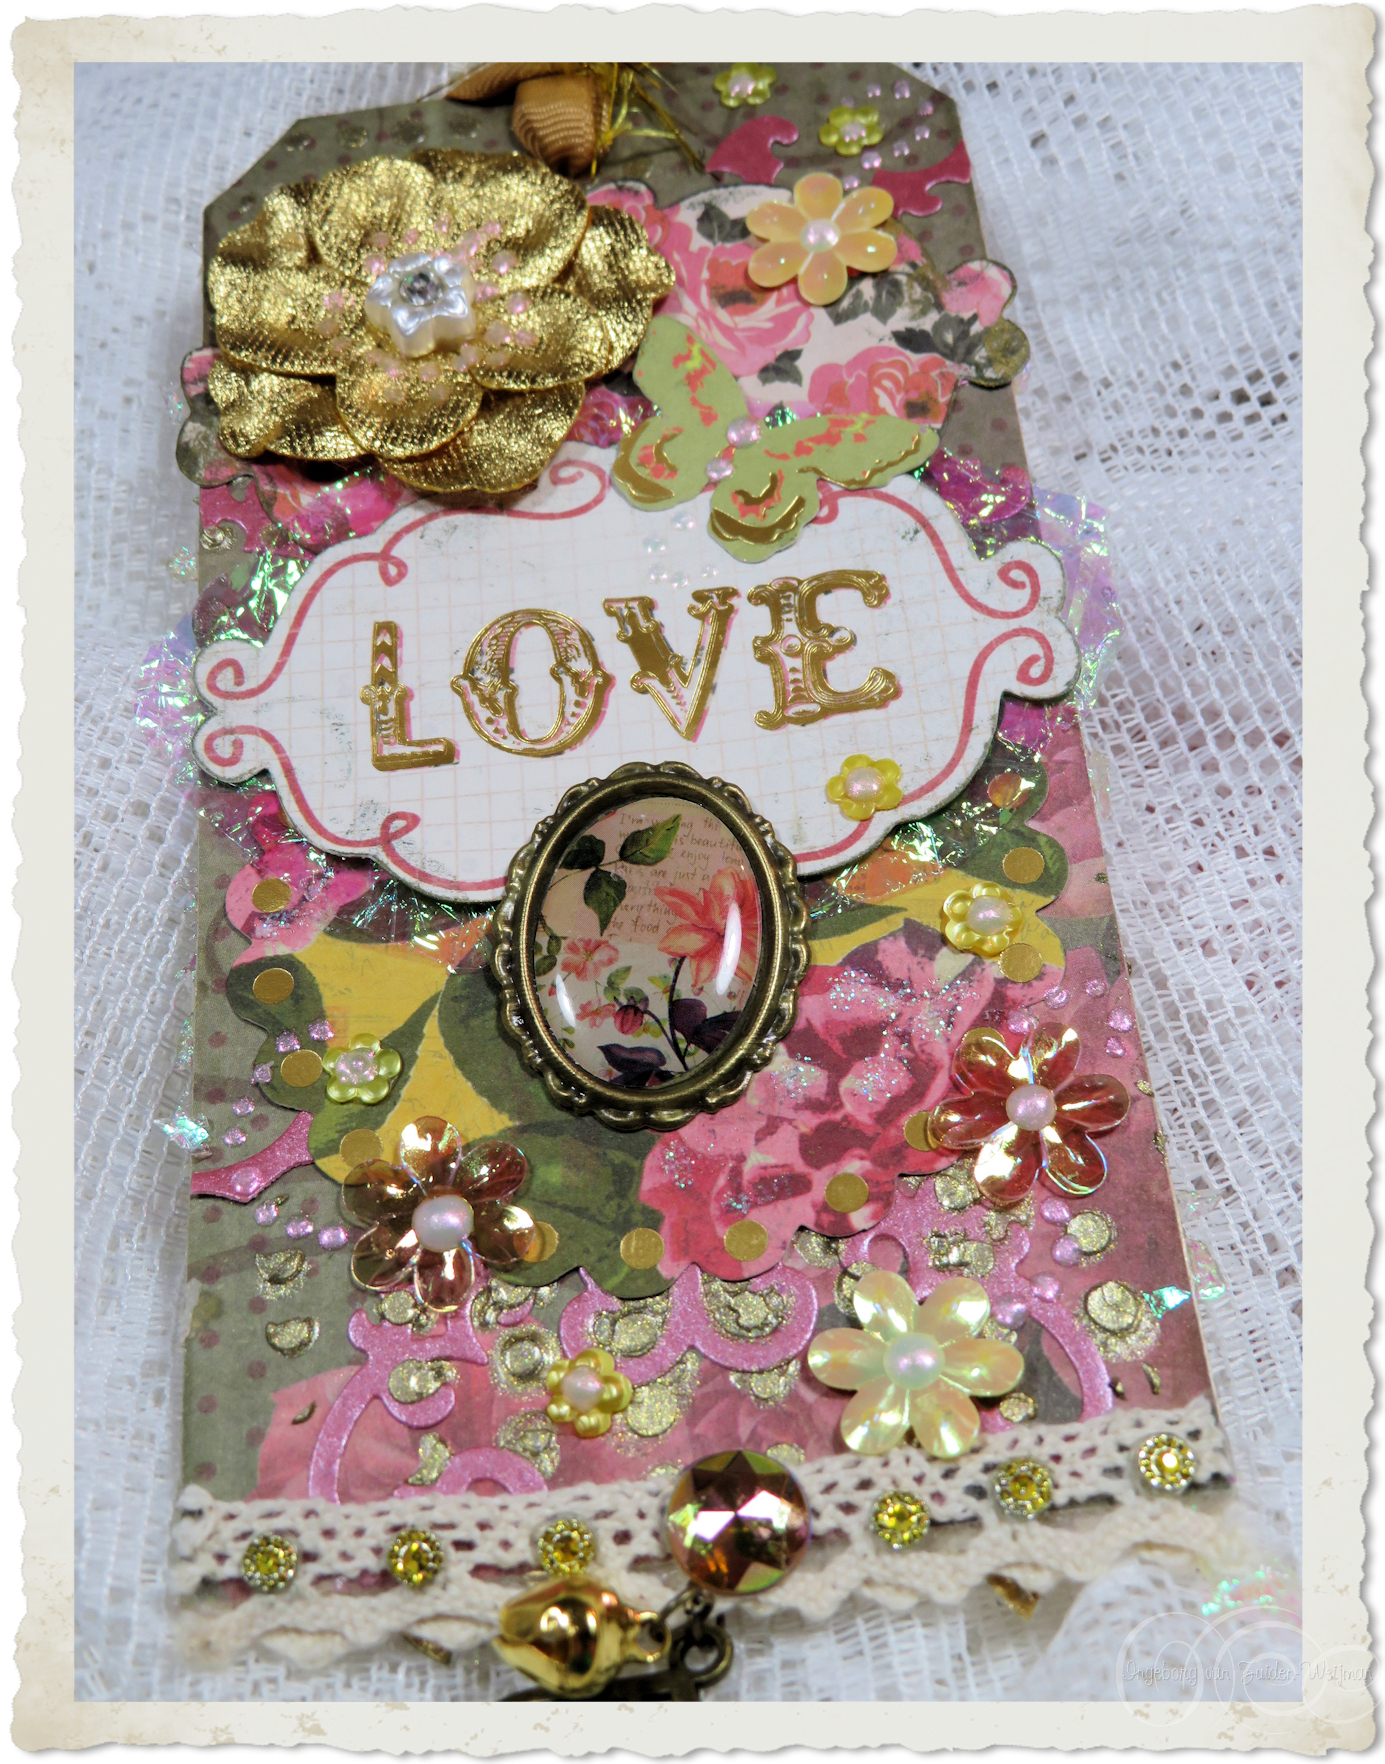 Details of handmade love tag